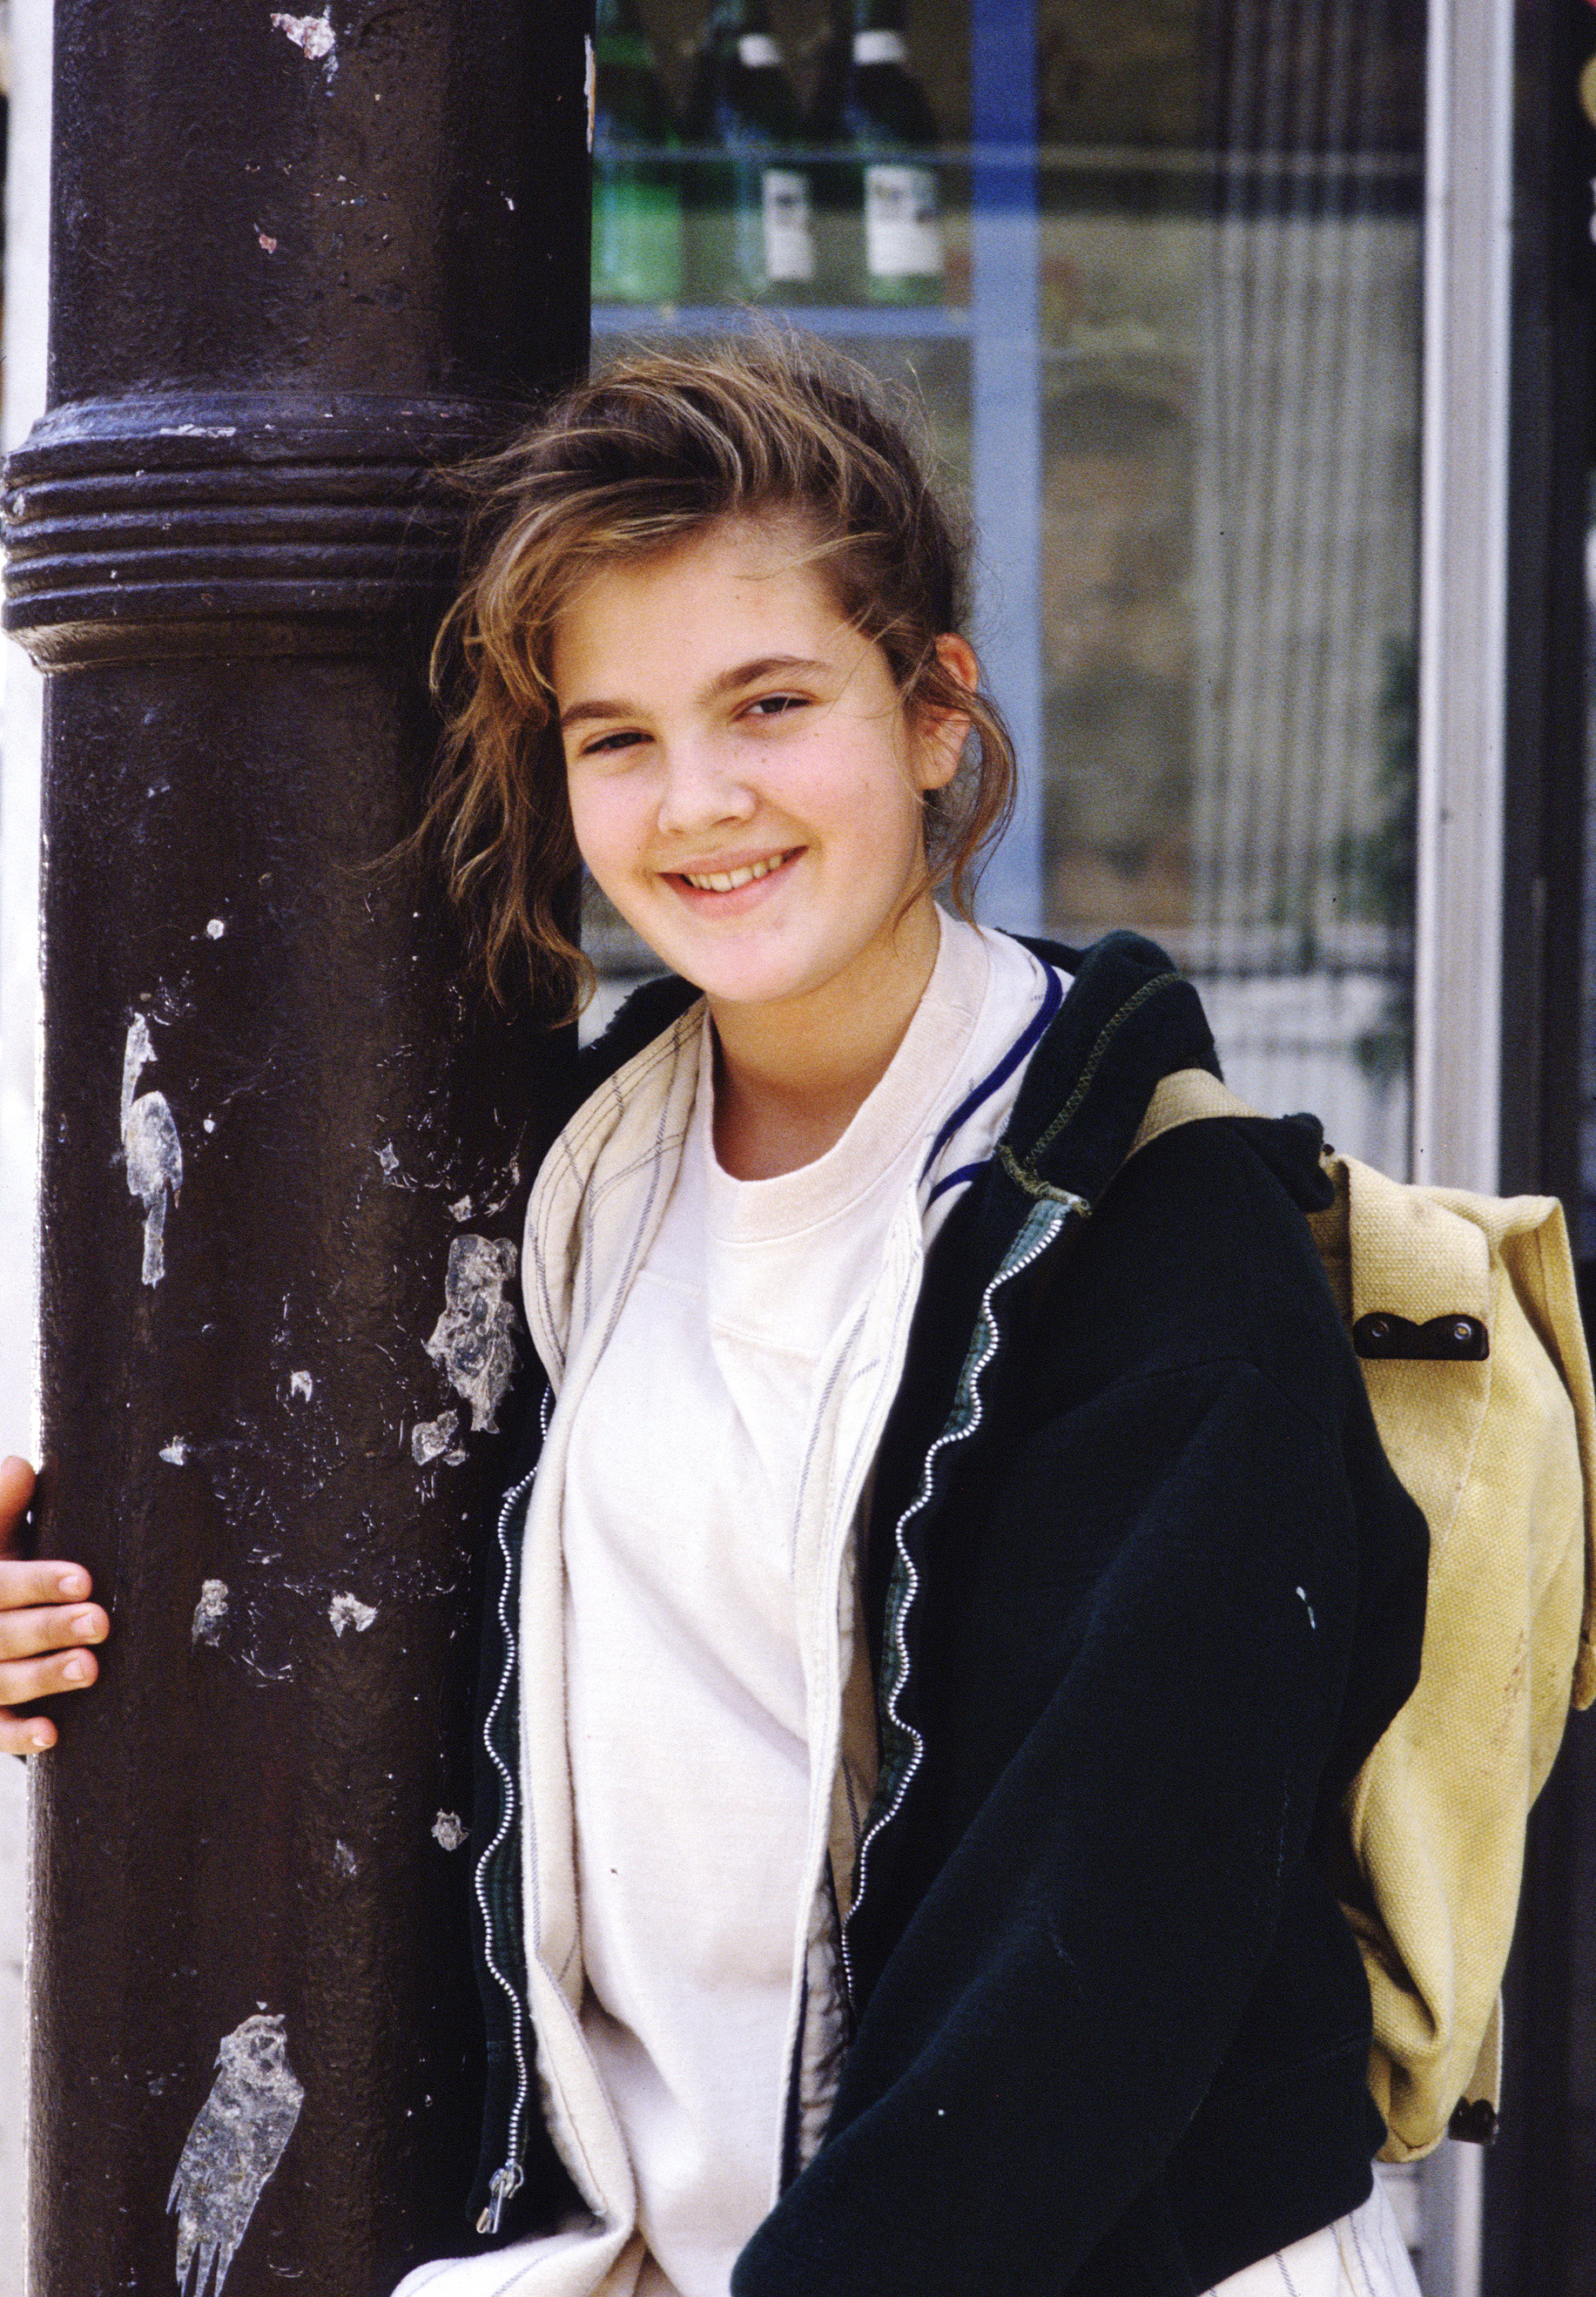 Drew Barrymore stars in the 1987 movie A Conspiracy of Love